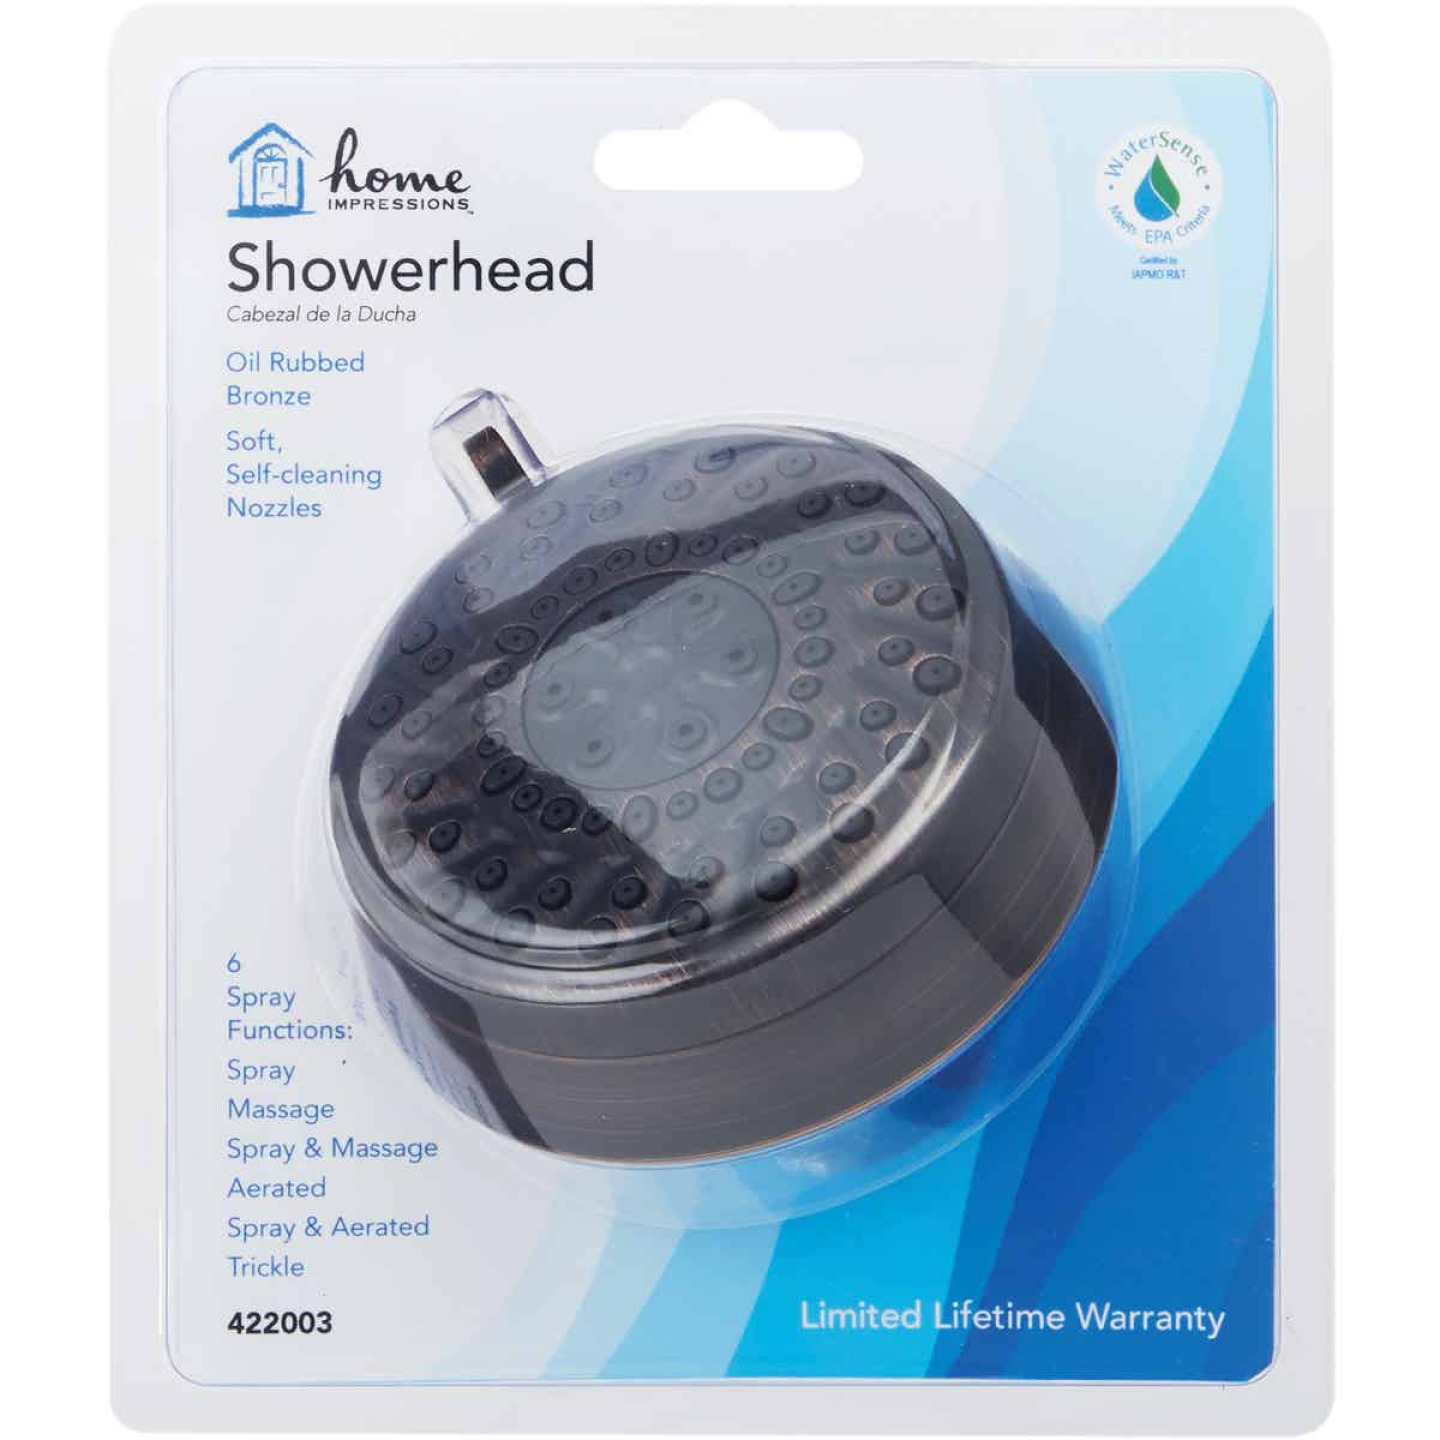 Home Impressions 6-Spray 1.8 GPM Fixed Showerhead, Oil-Rubbed Bronze Image 2